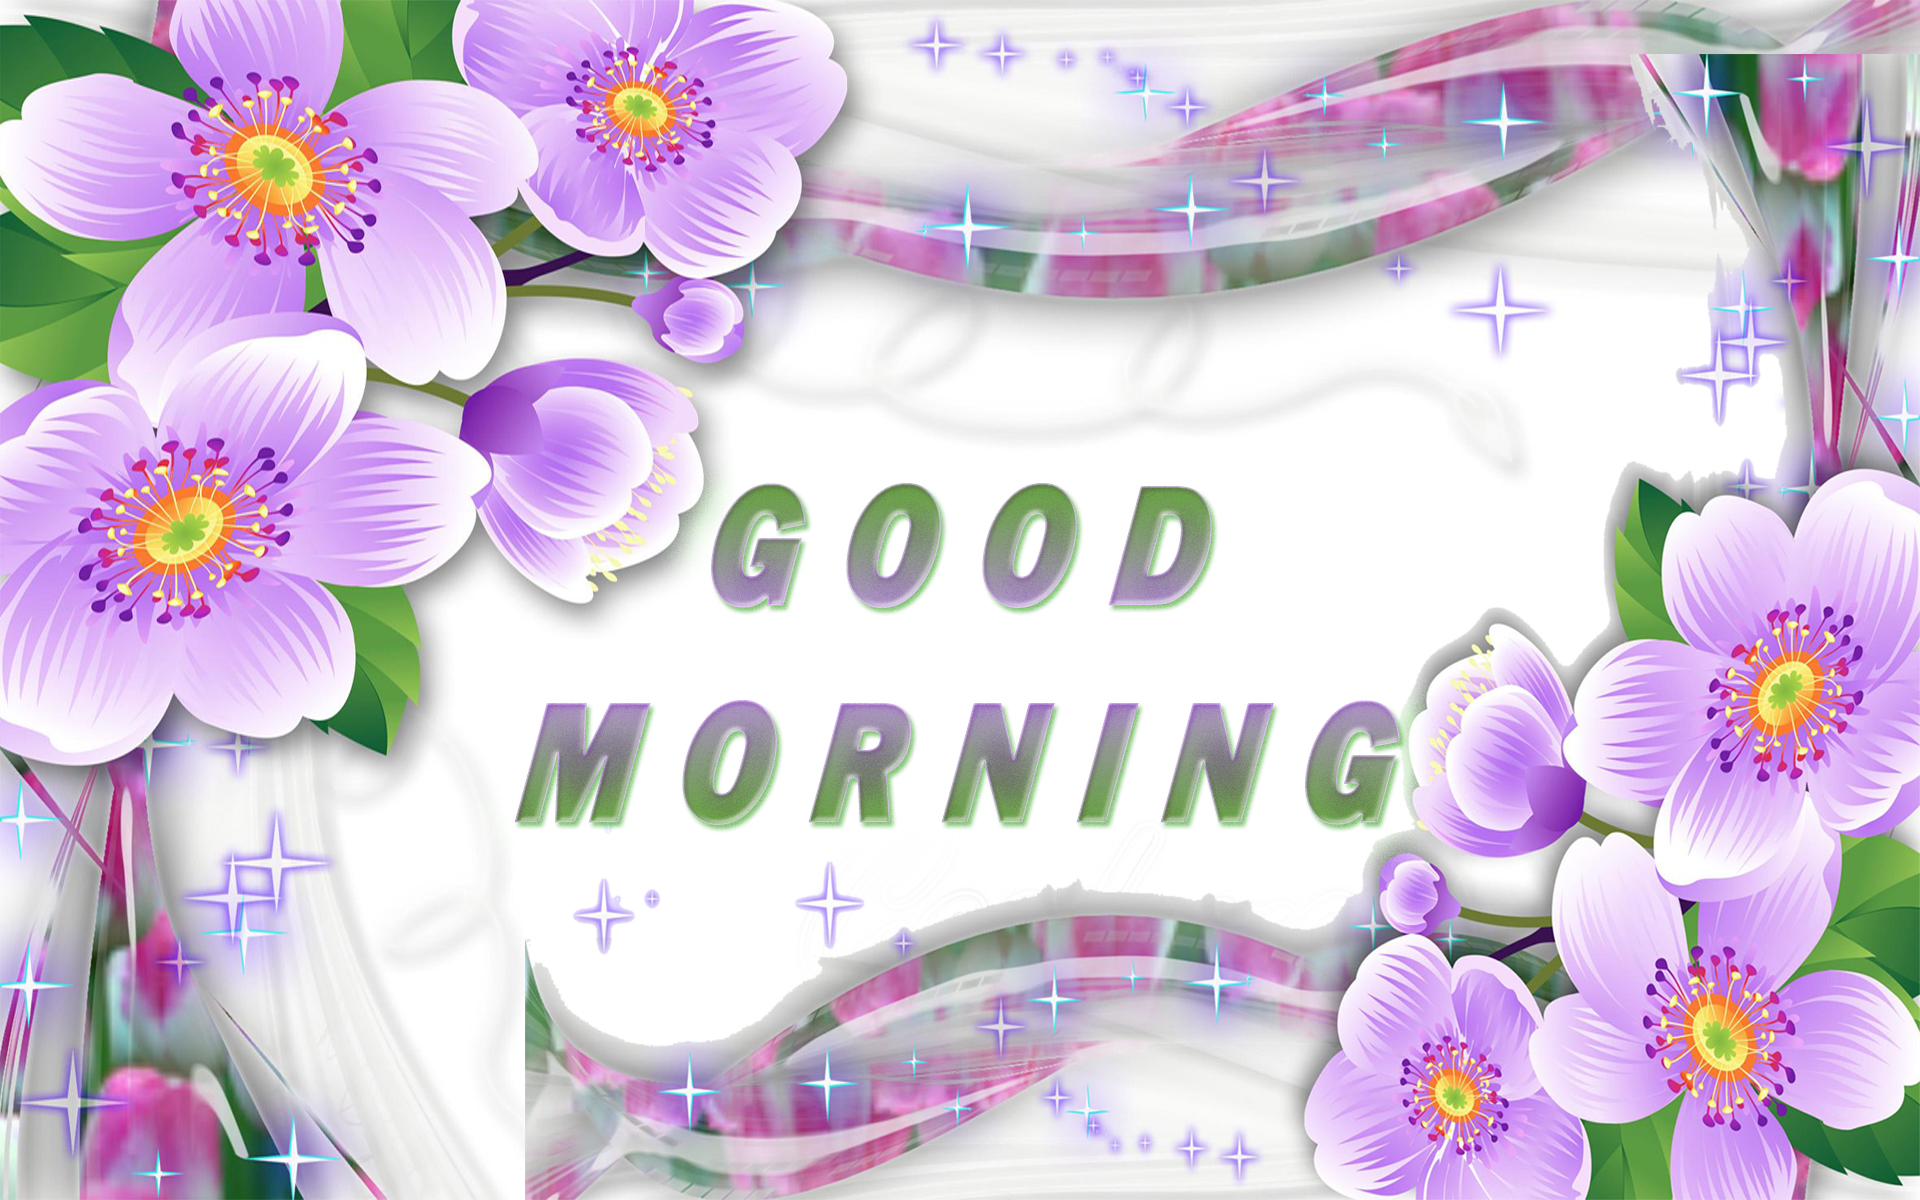 Good Morning Hd Backgrounds Pixelstalknet